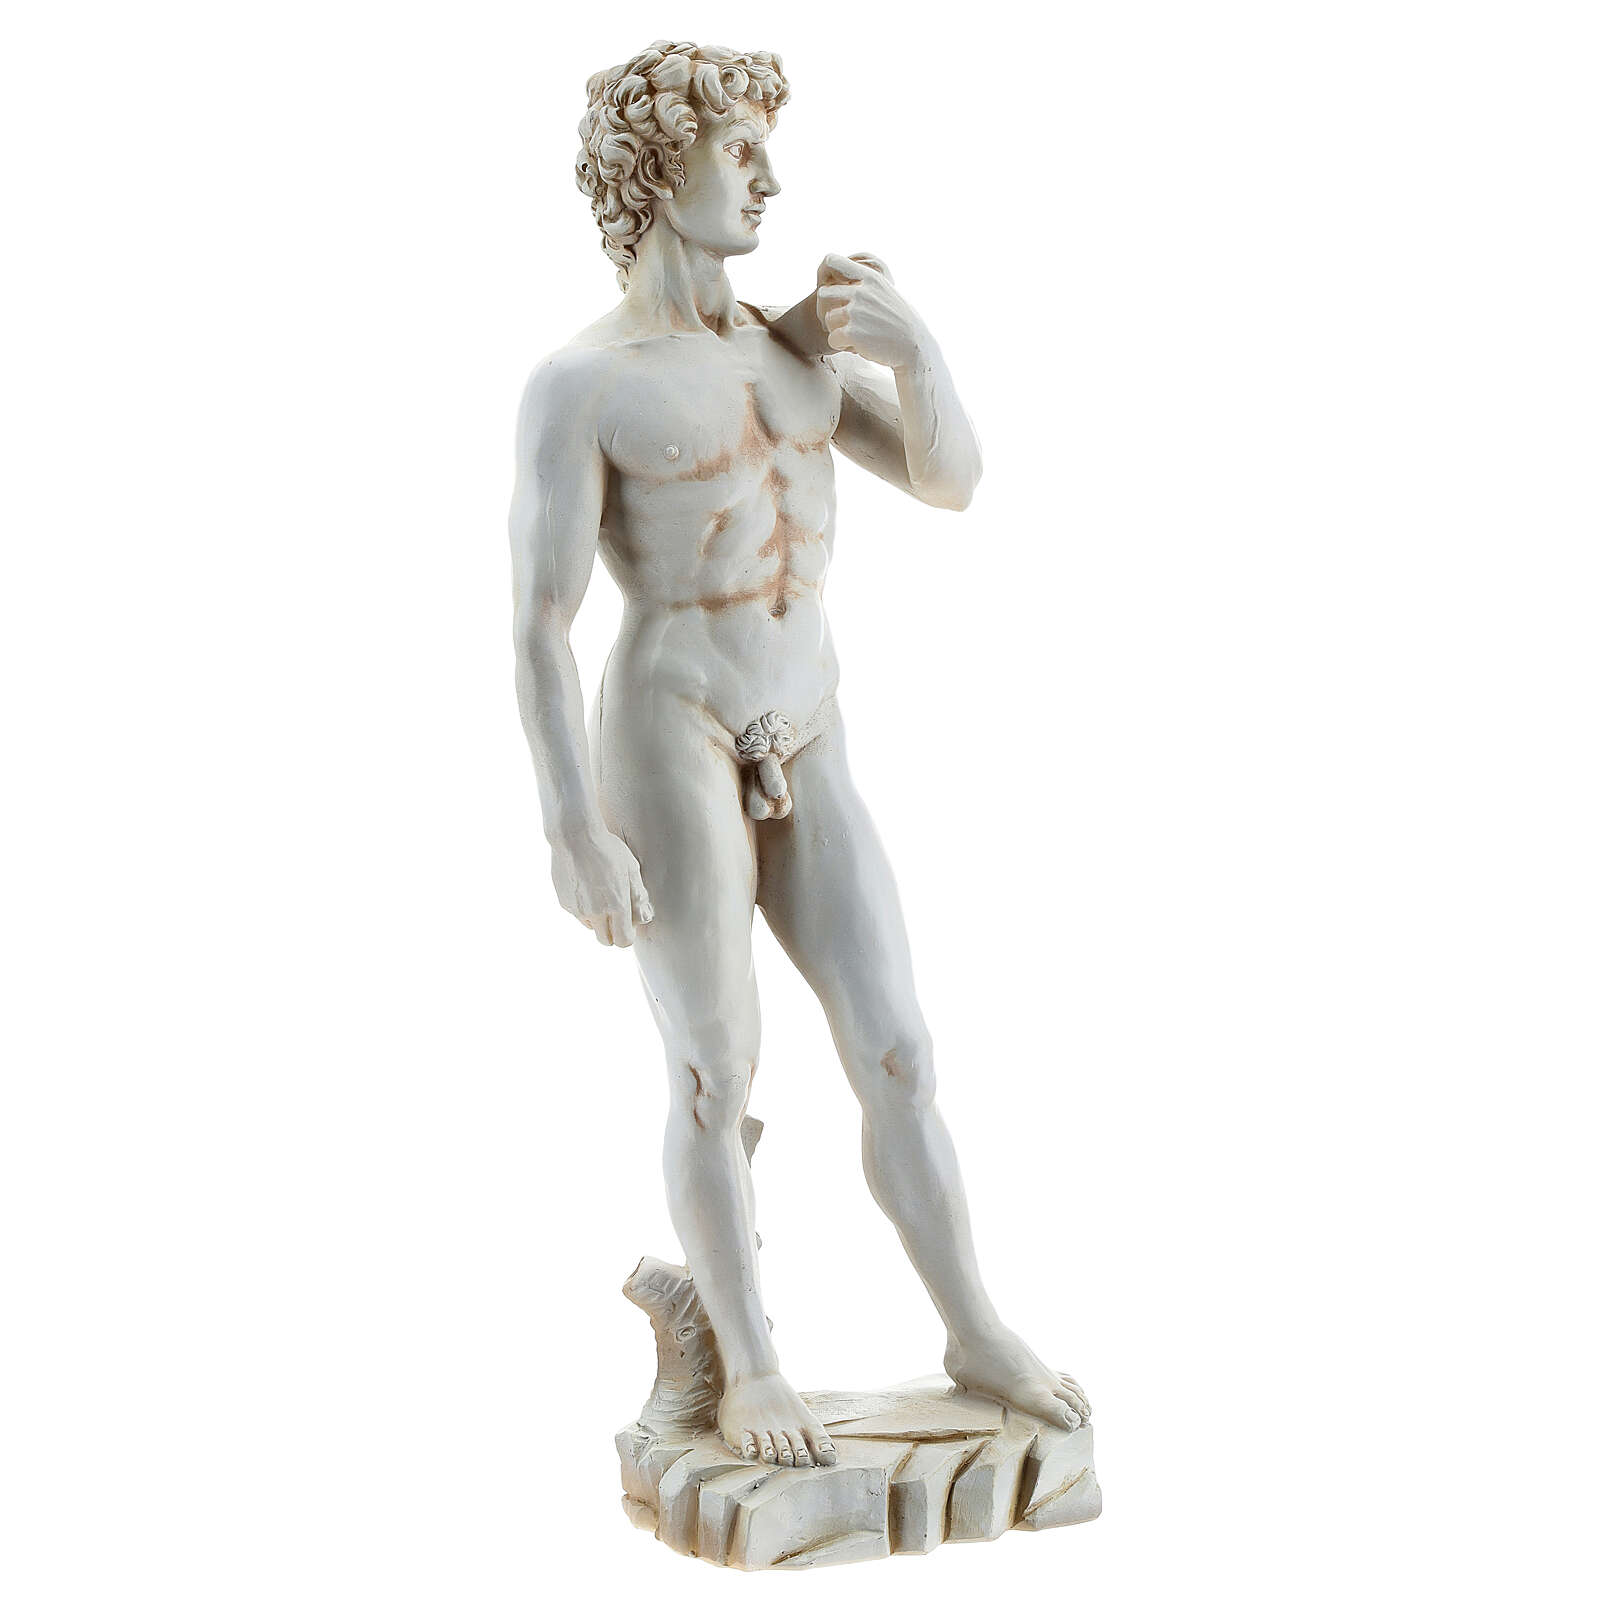 David Michel-Ange reproduction statue résine 31 cm 4